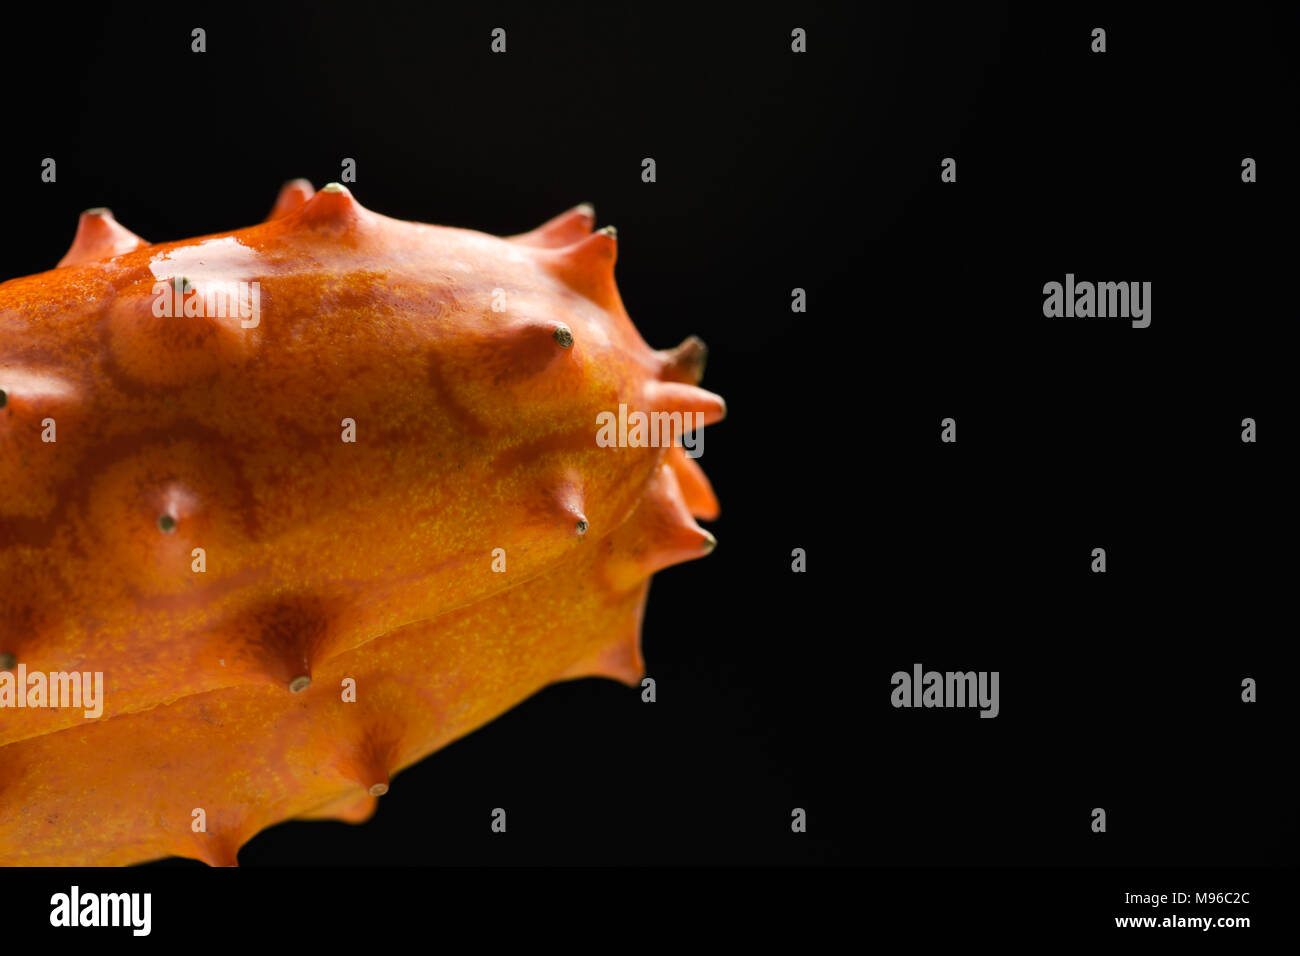 closeup of a kiwano or horned melon on a black background, with some blank space on the right - Stock Image